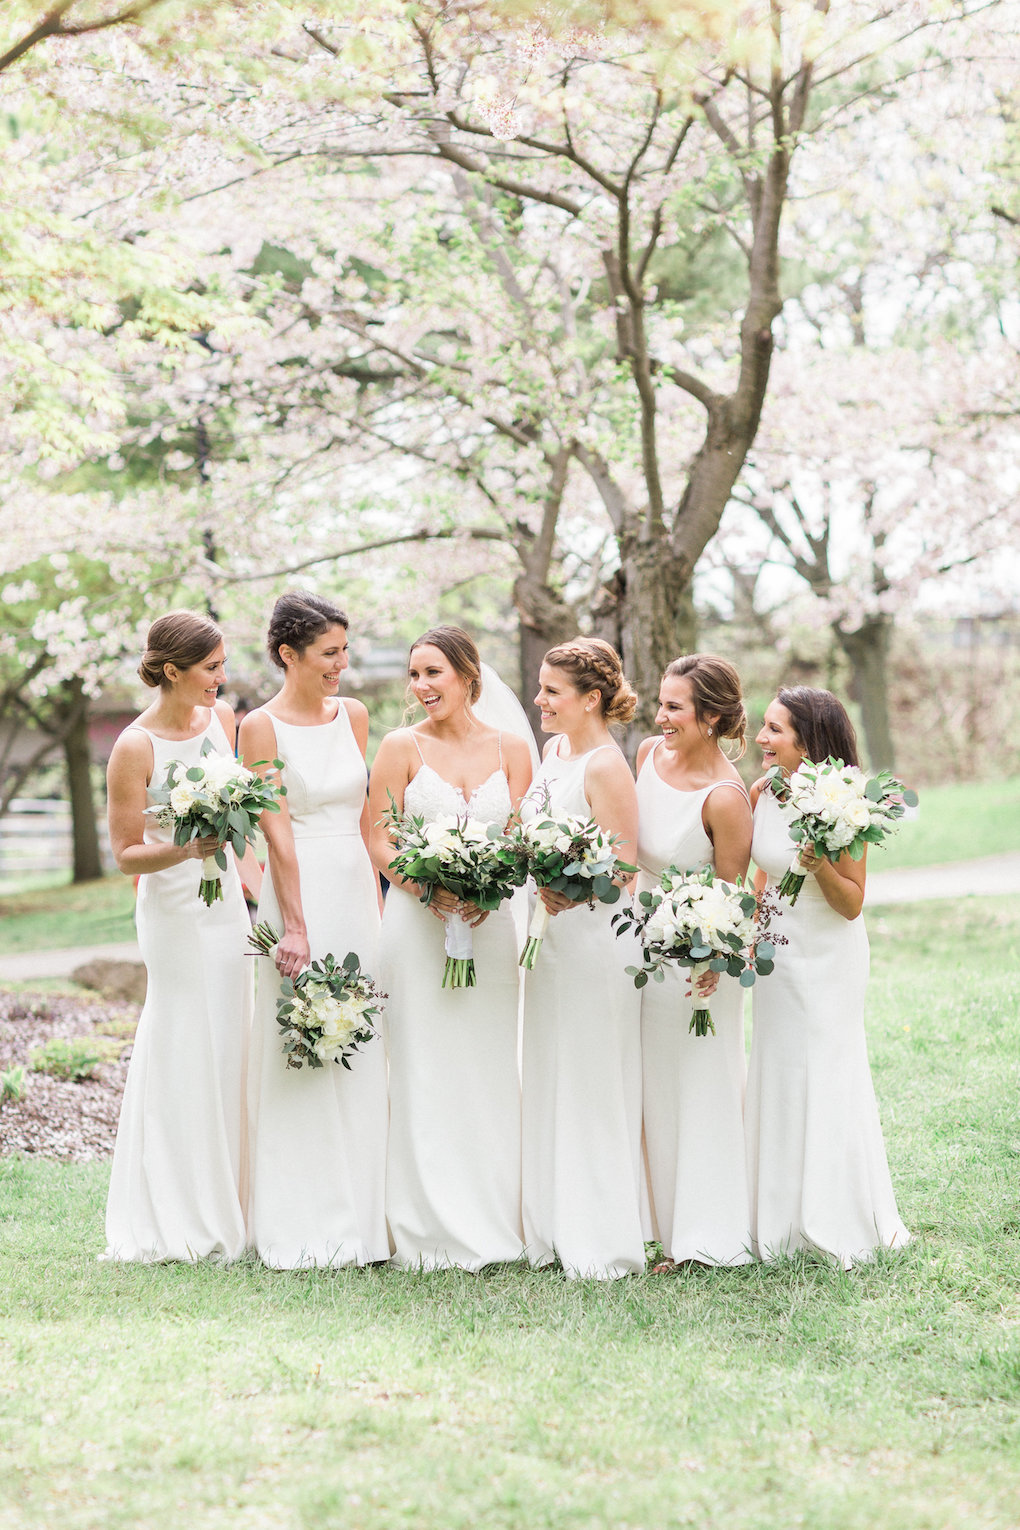 Bridesmaids in white bridesmaids dresses for chic wedding in Buffalo, NY planned by Exhale Events. Find more timeless wedding inspiration at exhale-events.com!